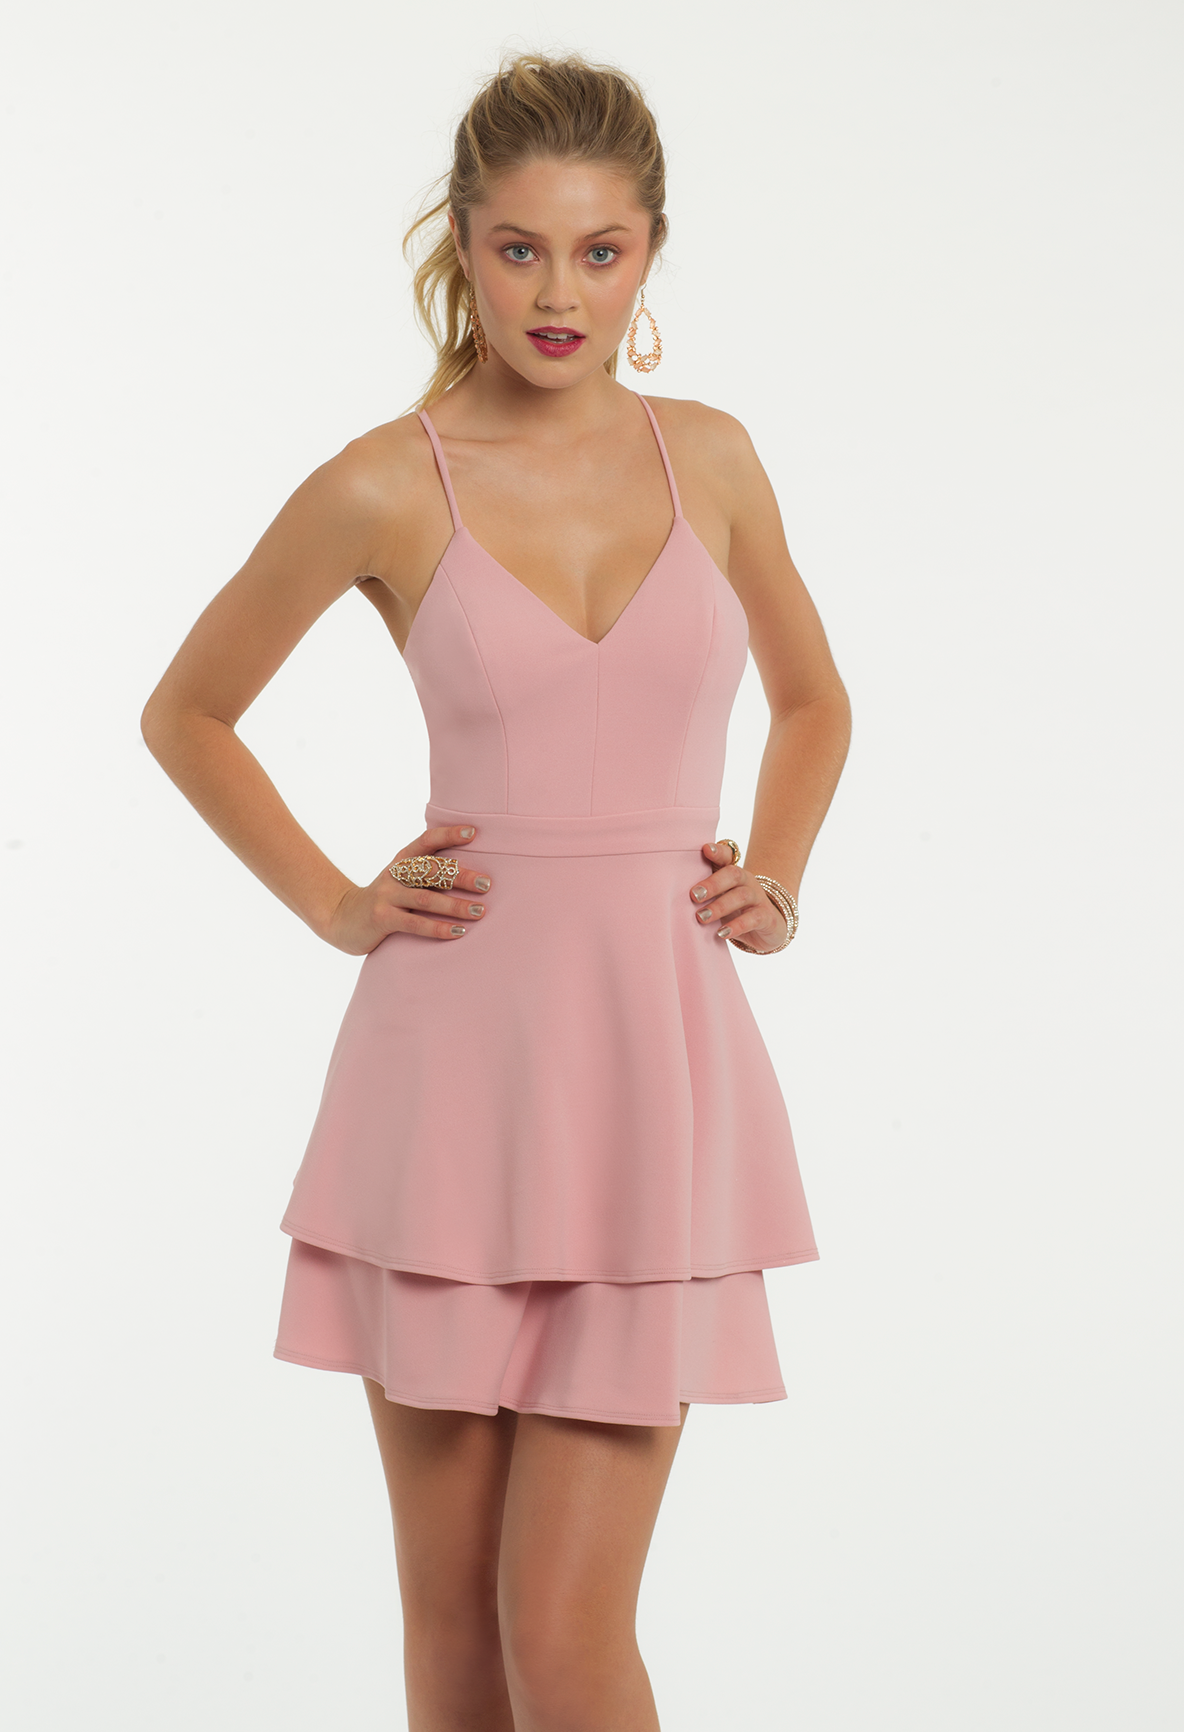 48ff5321fb7 Slip on this short cocktail dress and be the most sophisticated girl in the  room! With its v-neckline